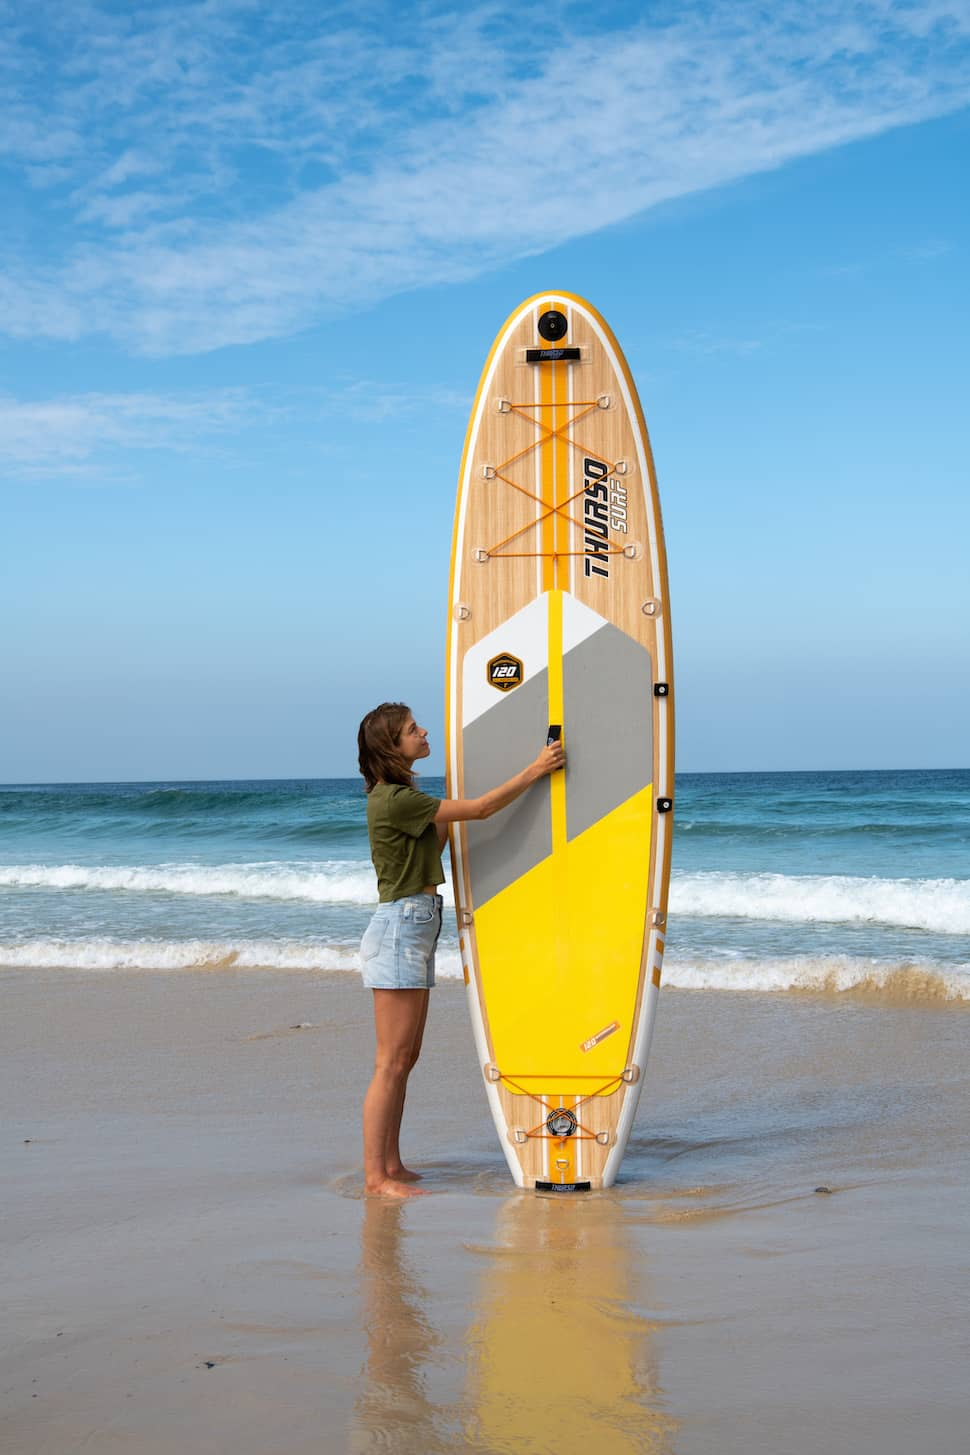 woman stands next to Thurso Surf Waterwalker All-around SUP on beach in front of breaking waves